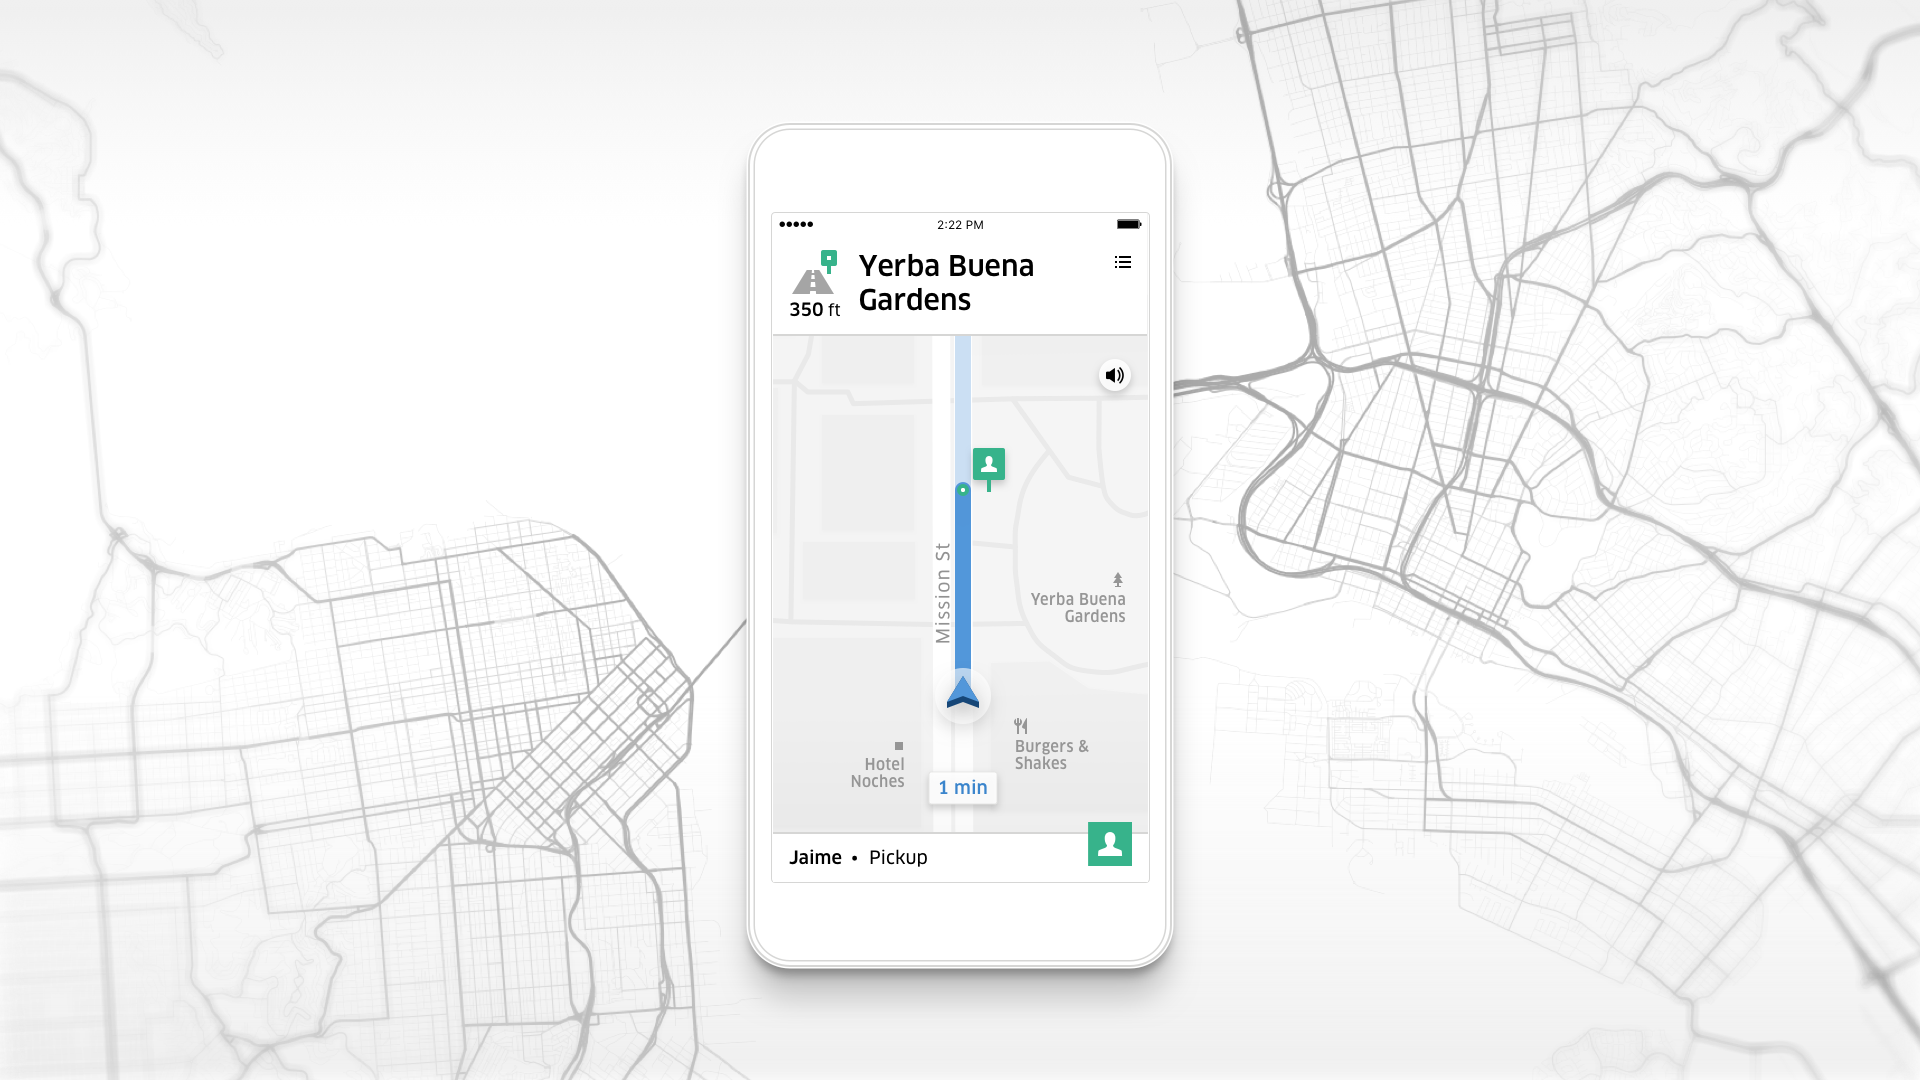 Uber Navigation - Uber Design - Medium